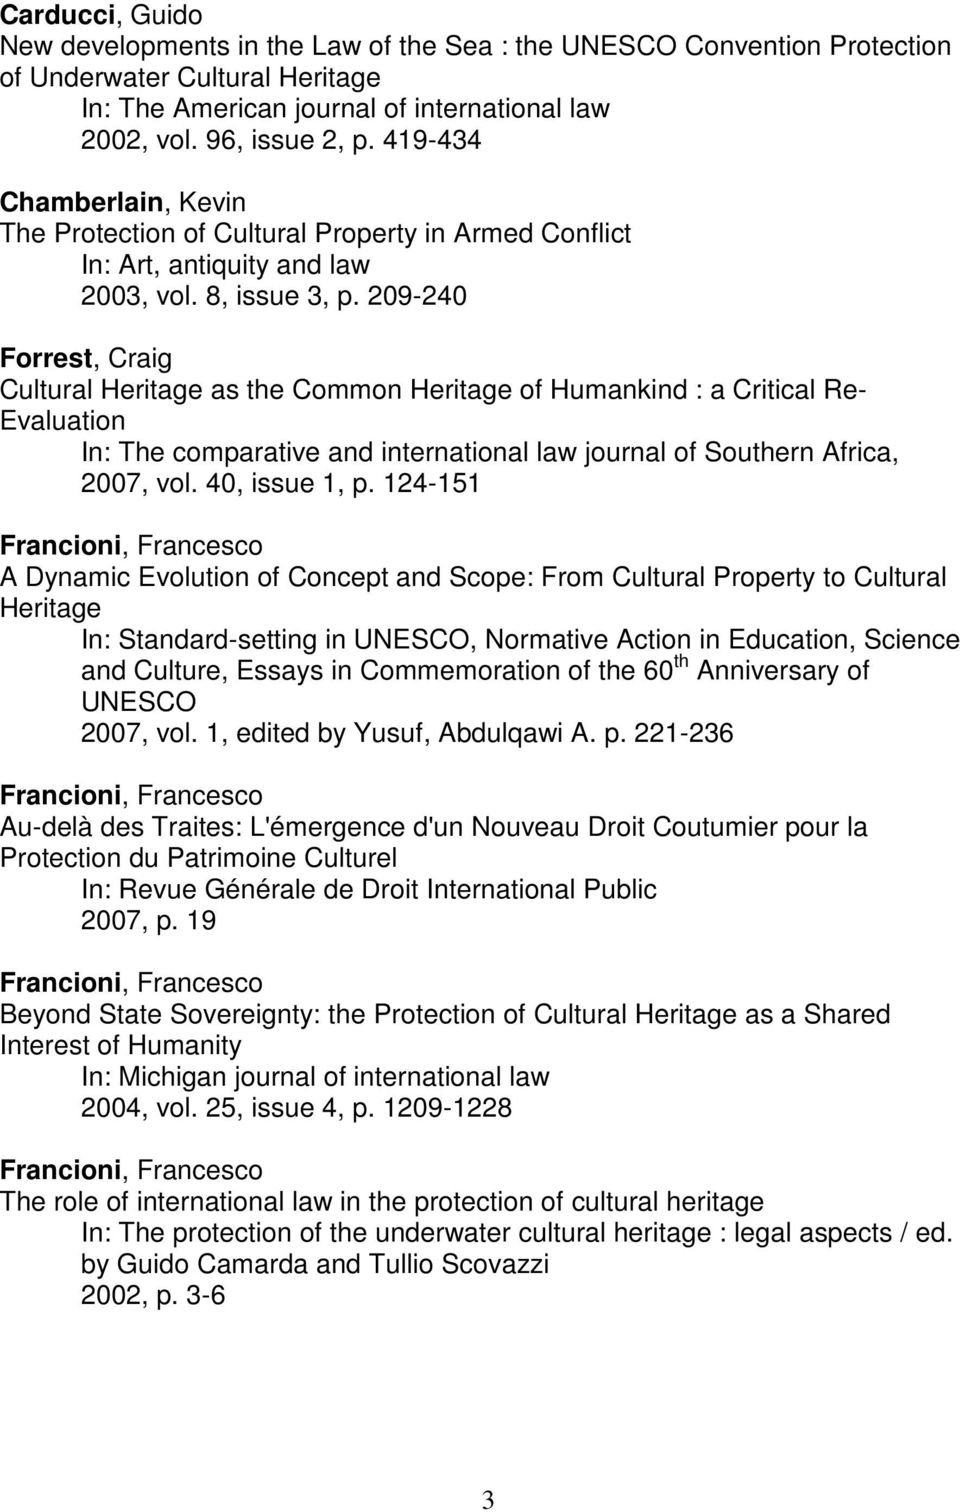 209-240 Forrest, Craig Cultural Heritage as the Common Heritage of Humankind : a Critical Re- Evaluation In: The comparative and international law journal of Southern Africa, 2007, vol.